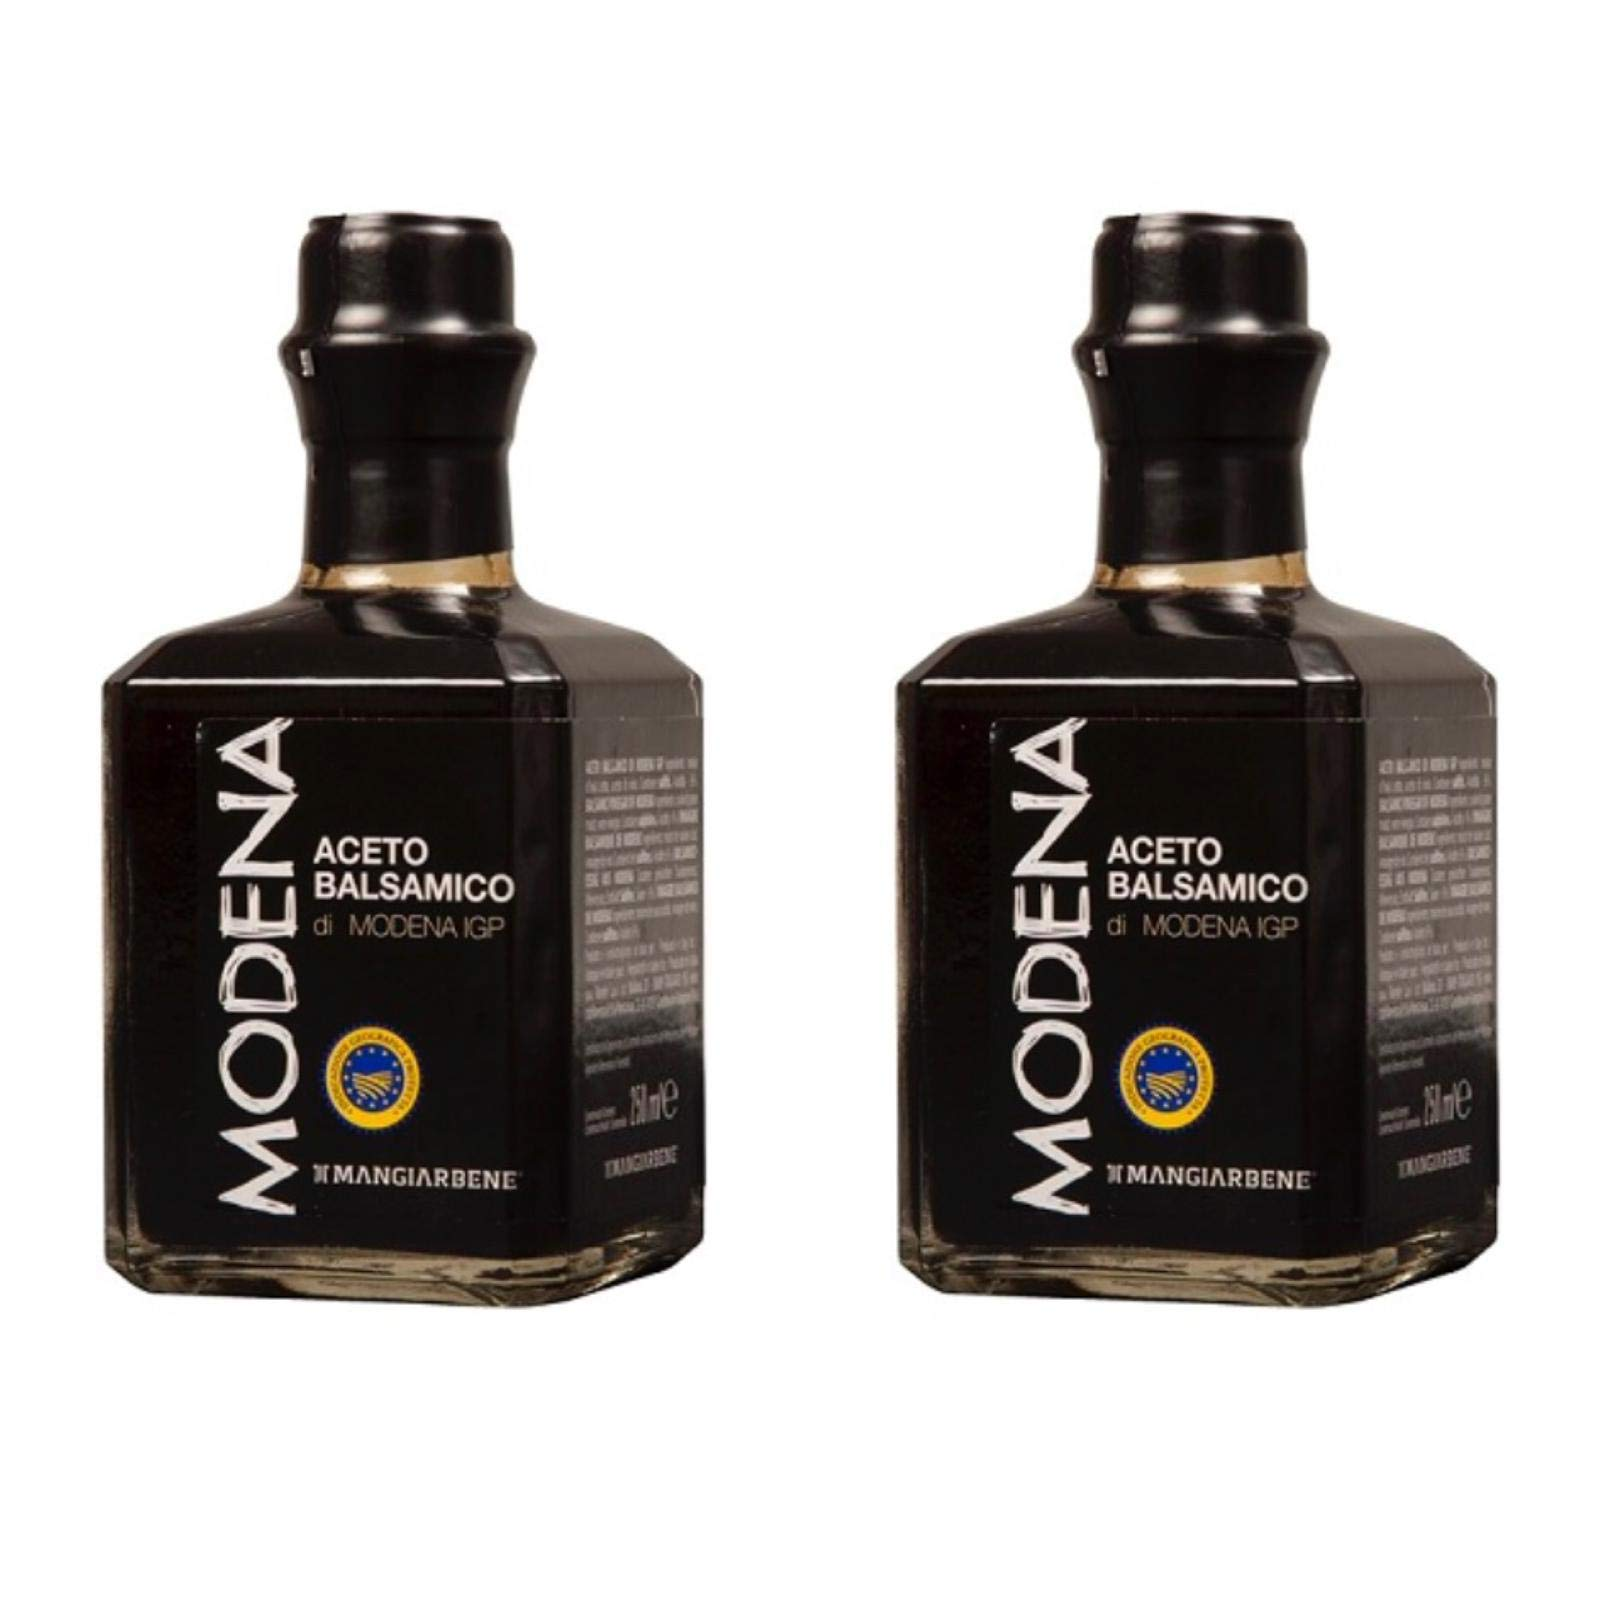 Balsamic Vinegar di Modena IGP (2 x 8.45 Oz) - Certified Product from Italy, by Serendipity Life. Aceto Balsamico IGP Barrel Aged Premium Thick and Glossy for a perfect dressing (250 ml) (2 Pack) by Serendipity Life